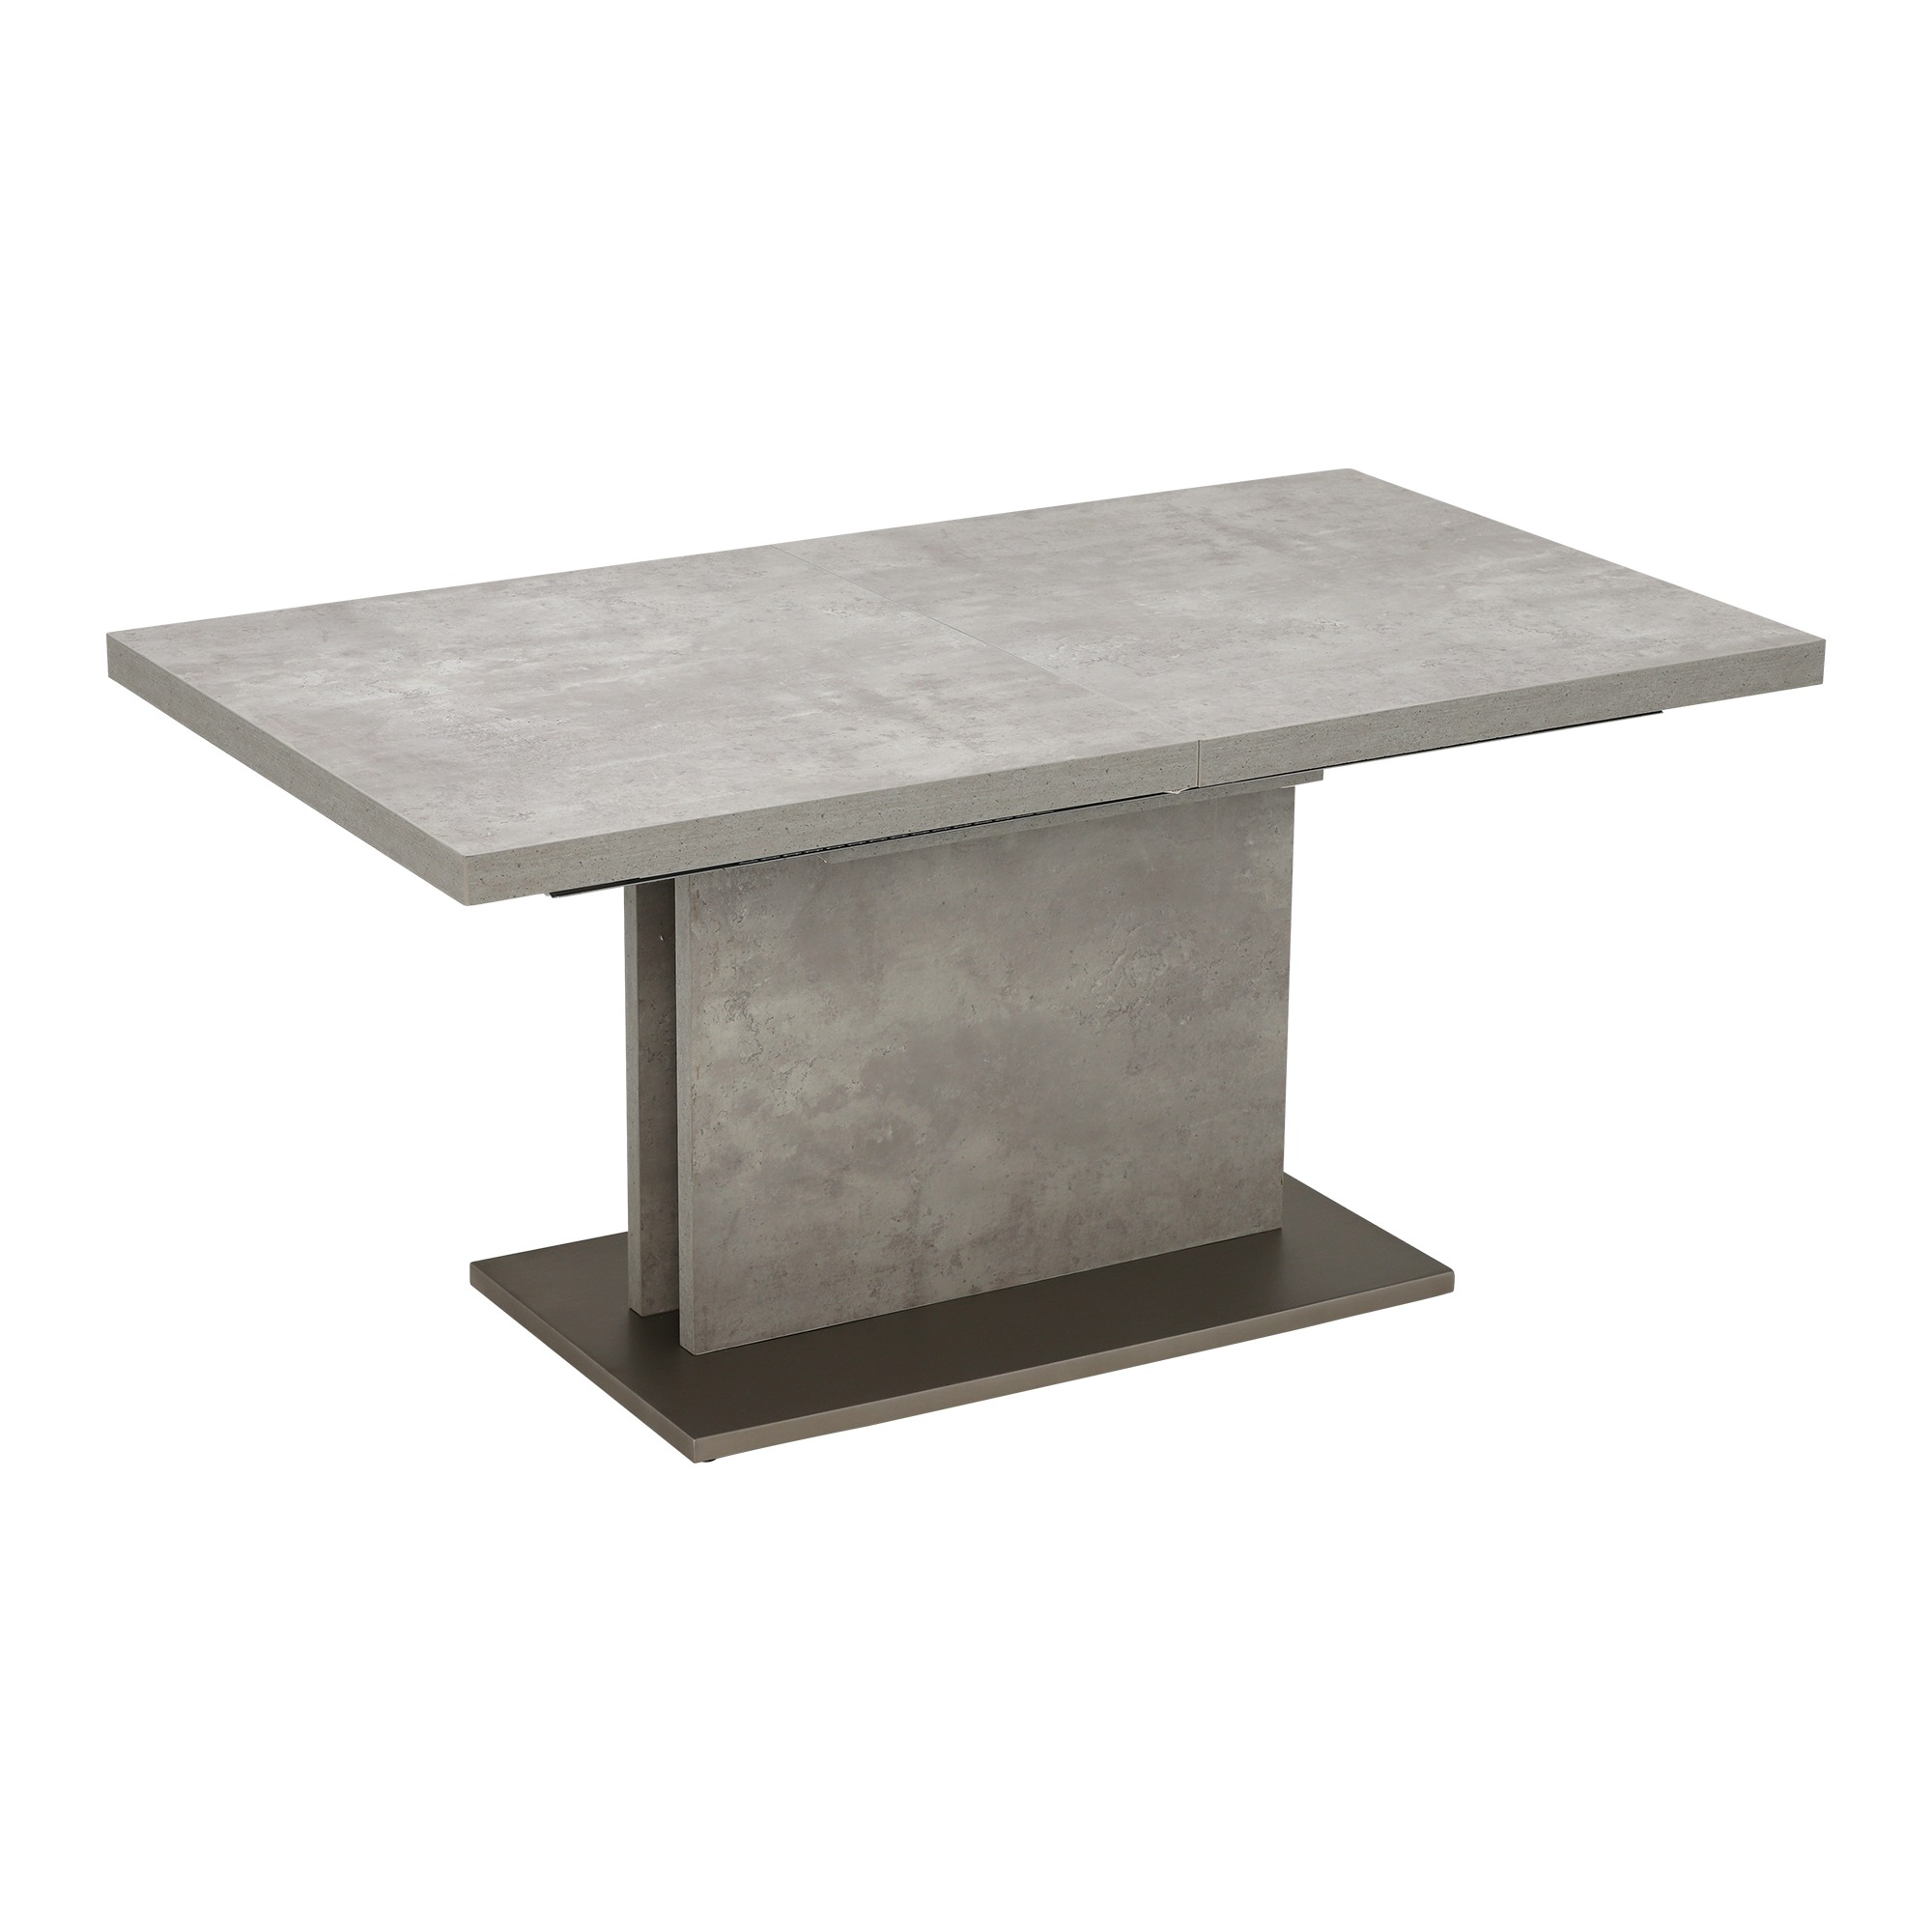 CONCRETE LOOK EXTENDING TABLE - CLOSED - L160cm x D90cm x H76cm.